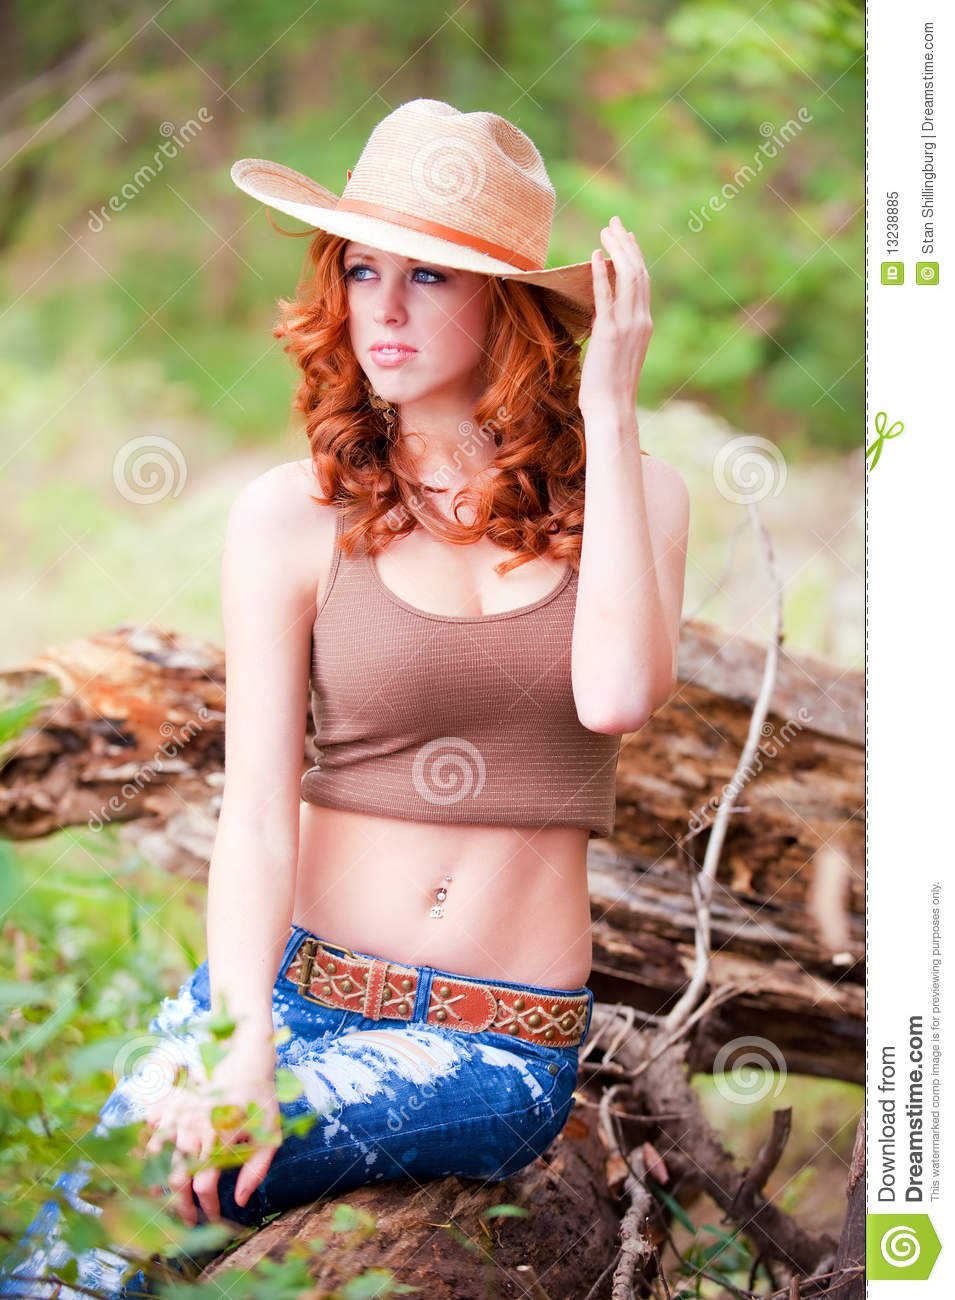 Woman with cowboy hat stock image. Image of hair 35d4dbfc361d